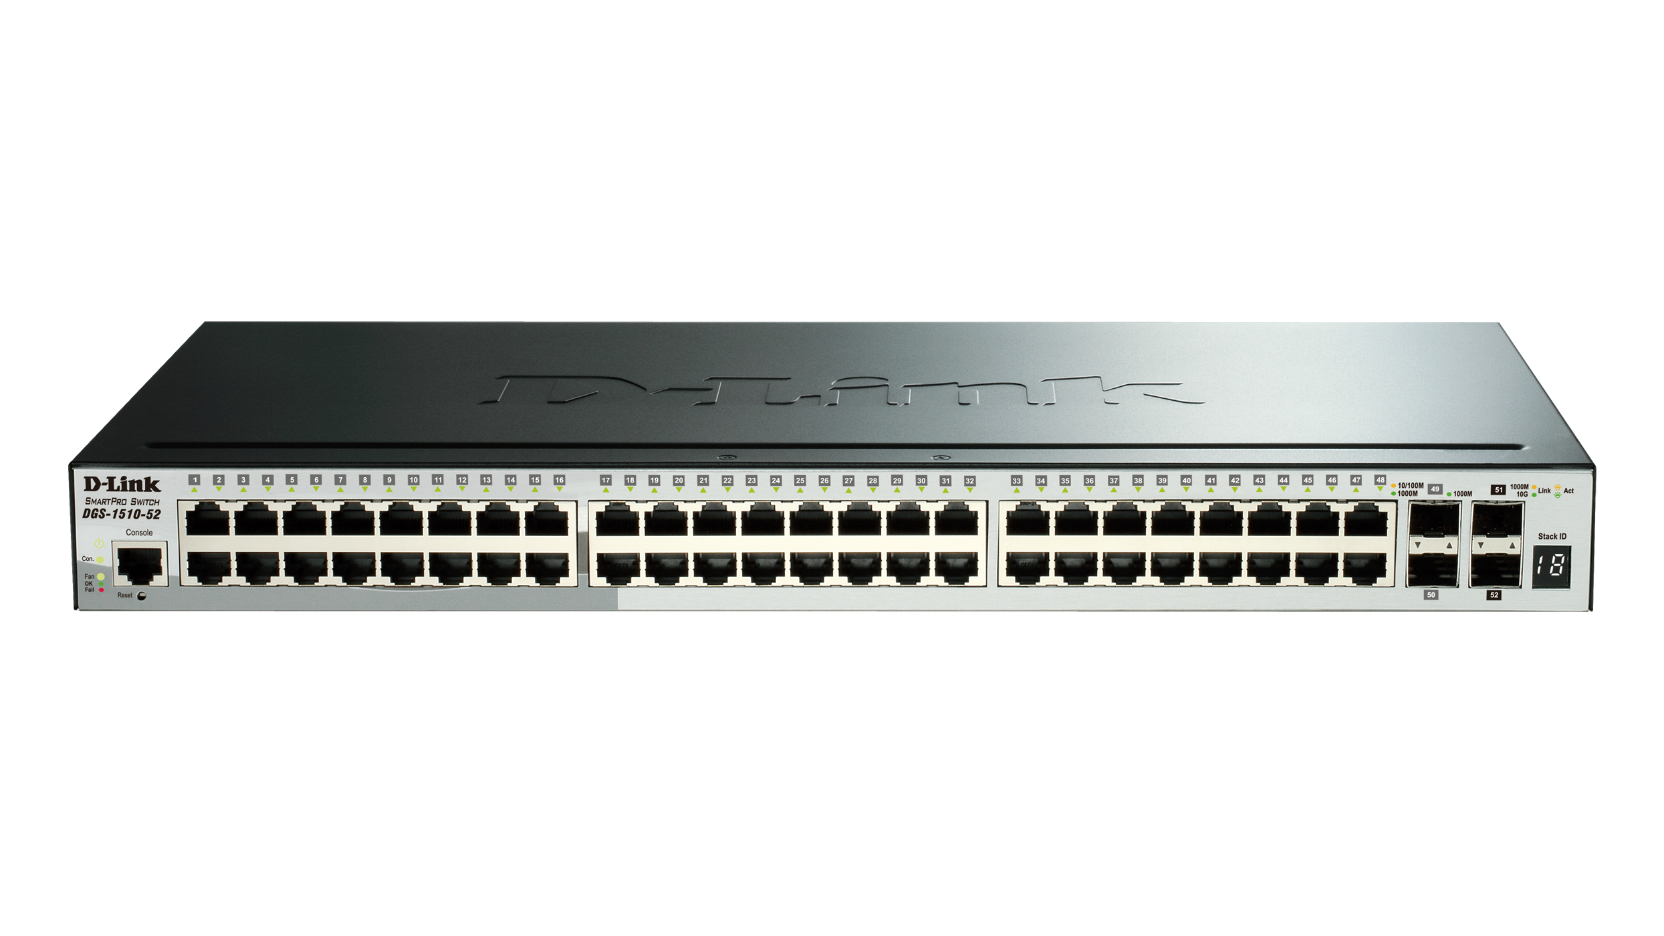 52-Port Gigabit Stackable Smart Managed Switch including 2 10G SFP+ and 2 SFP ports